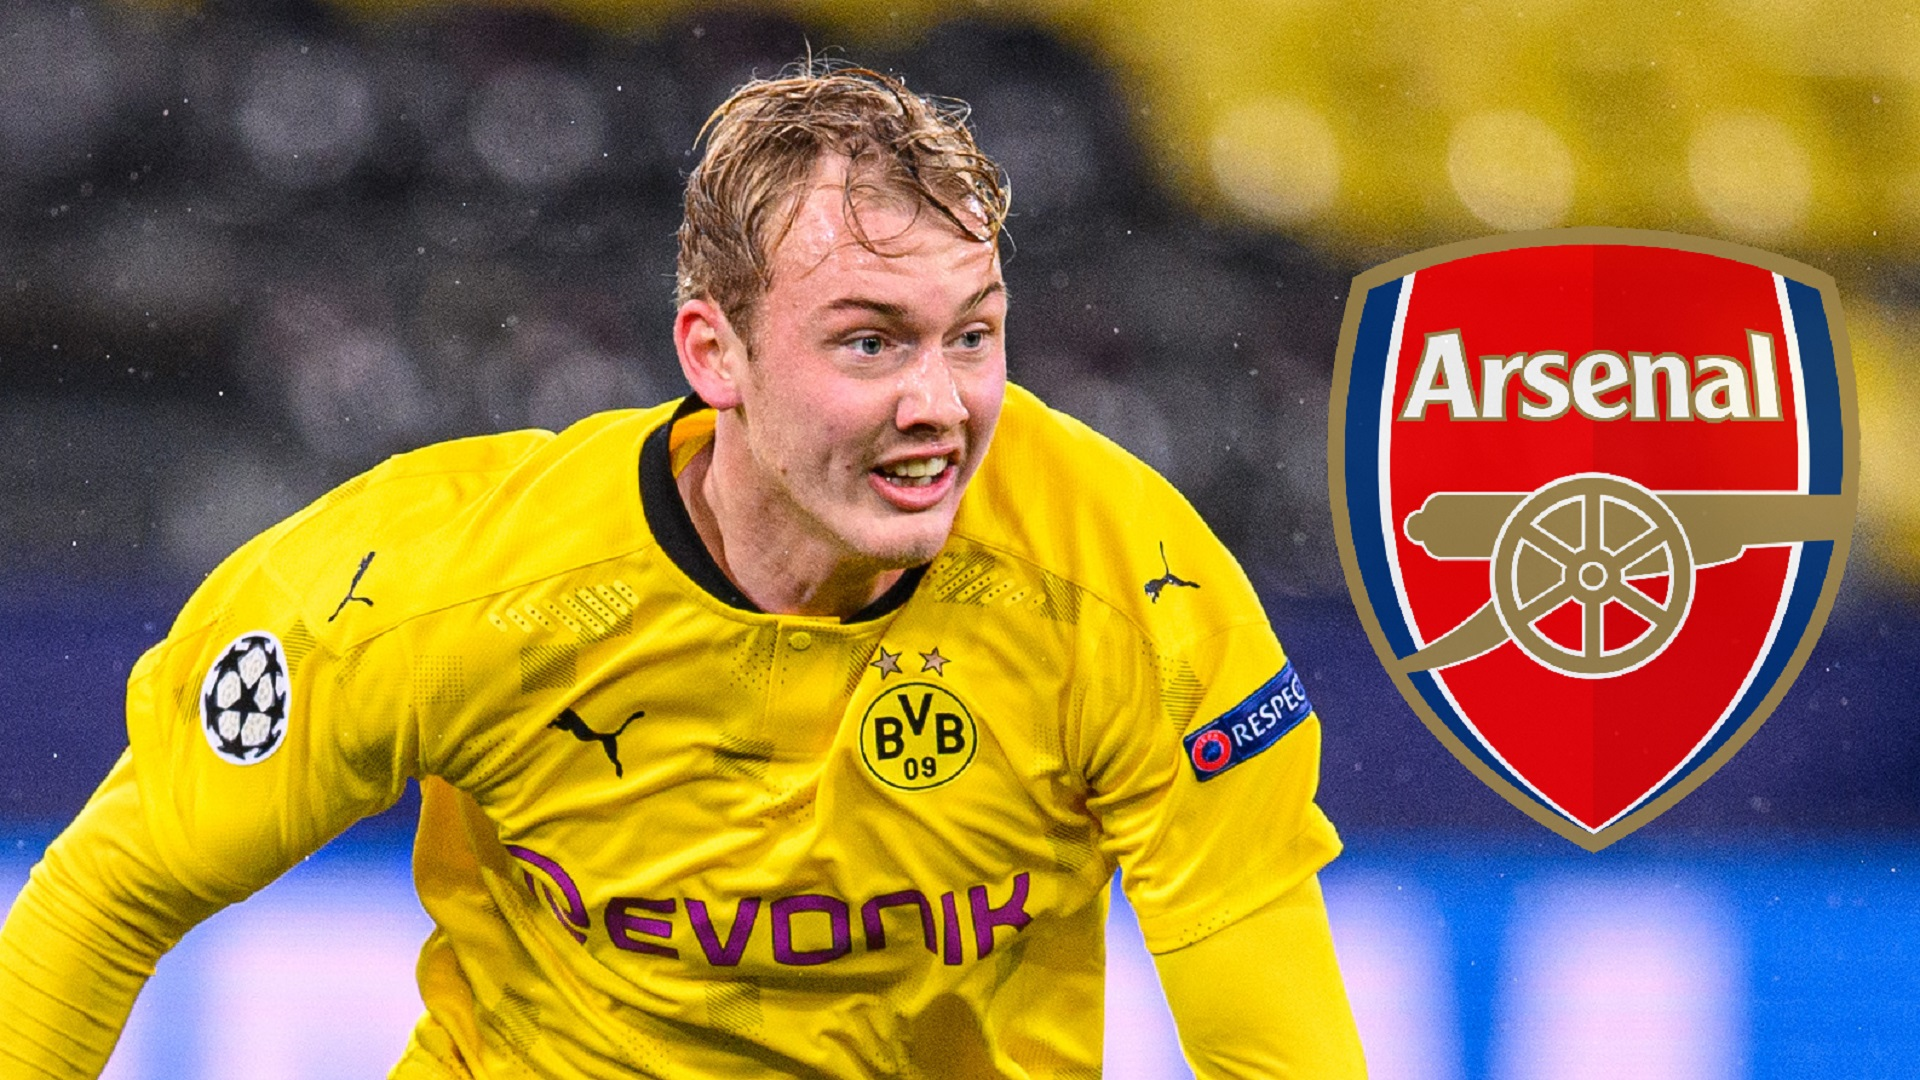 'There is nothing on the table' - Borussia Dortmund rubbish Brandt to Arsenal rumours